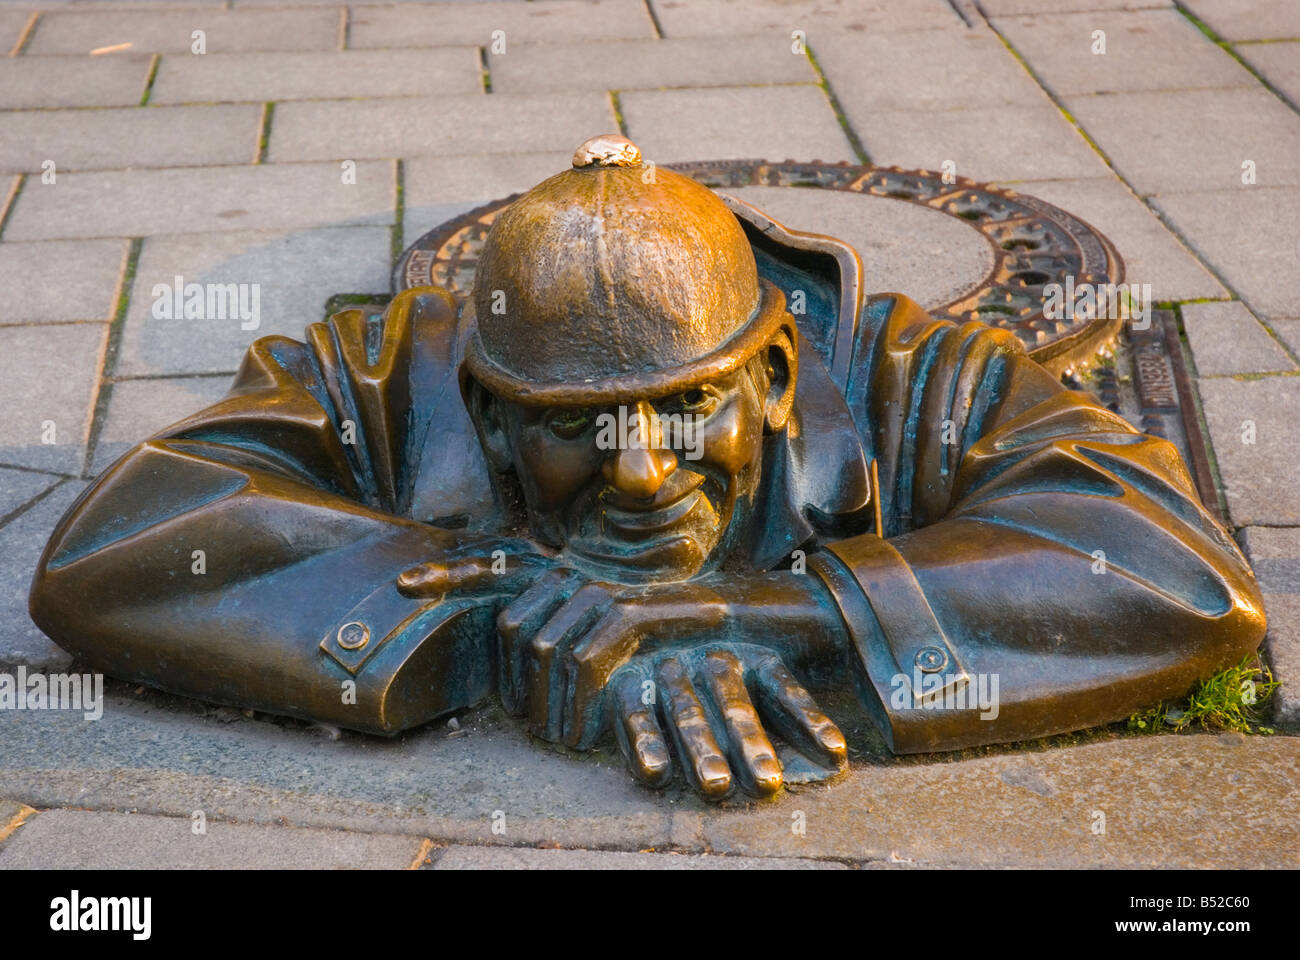 Man at Work statue in old town Bratislava Slovakia Europe - Stock Image